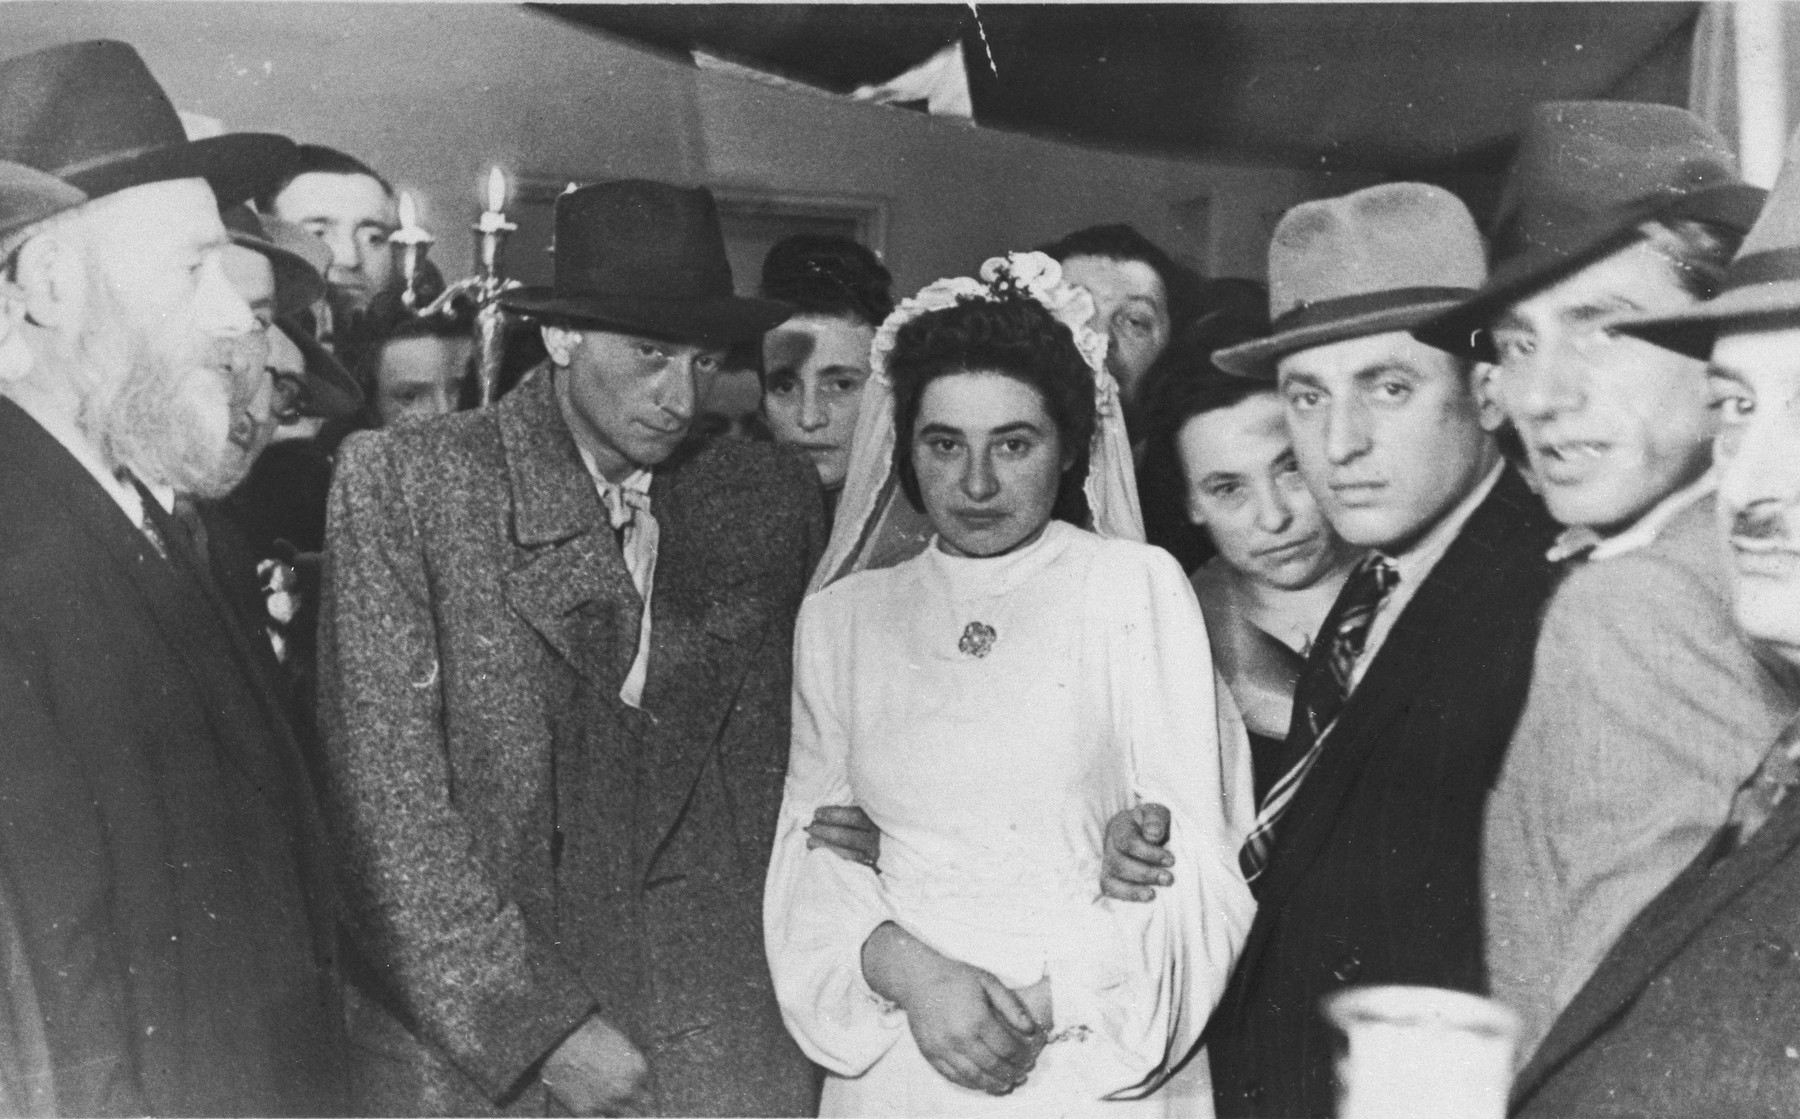 Jewish DPs are wed in a ceremony in Heidelberg, Germany.  Pictured are the bride and groom, Toby and Bernard Weitschner.  Standing next to them on the right are Chava and Izak Lachter.